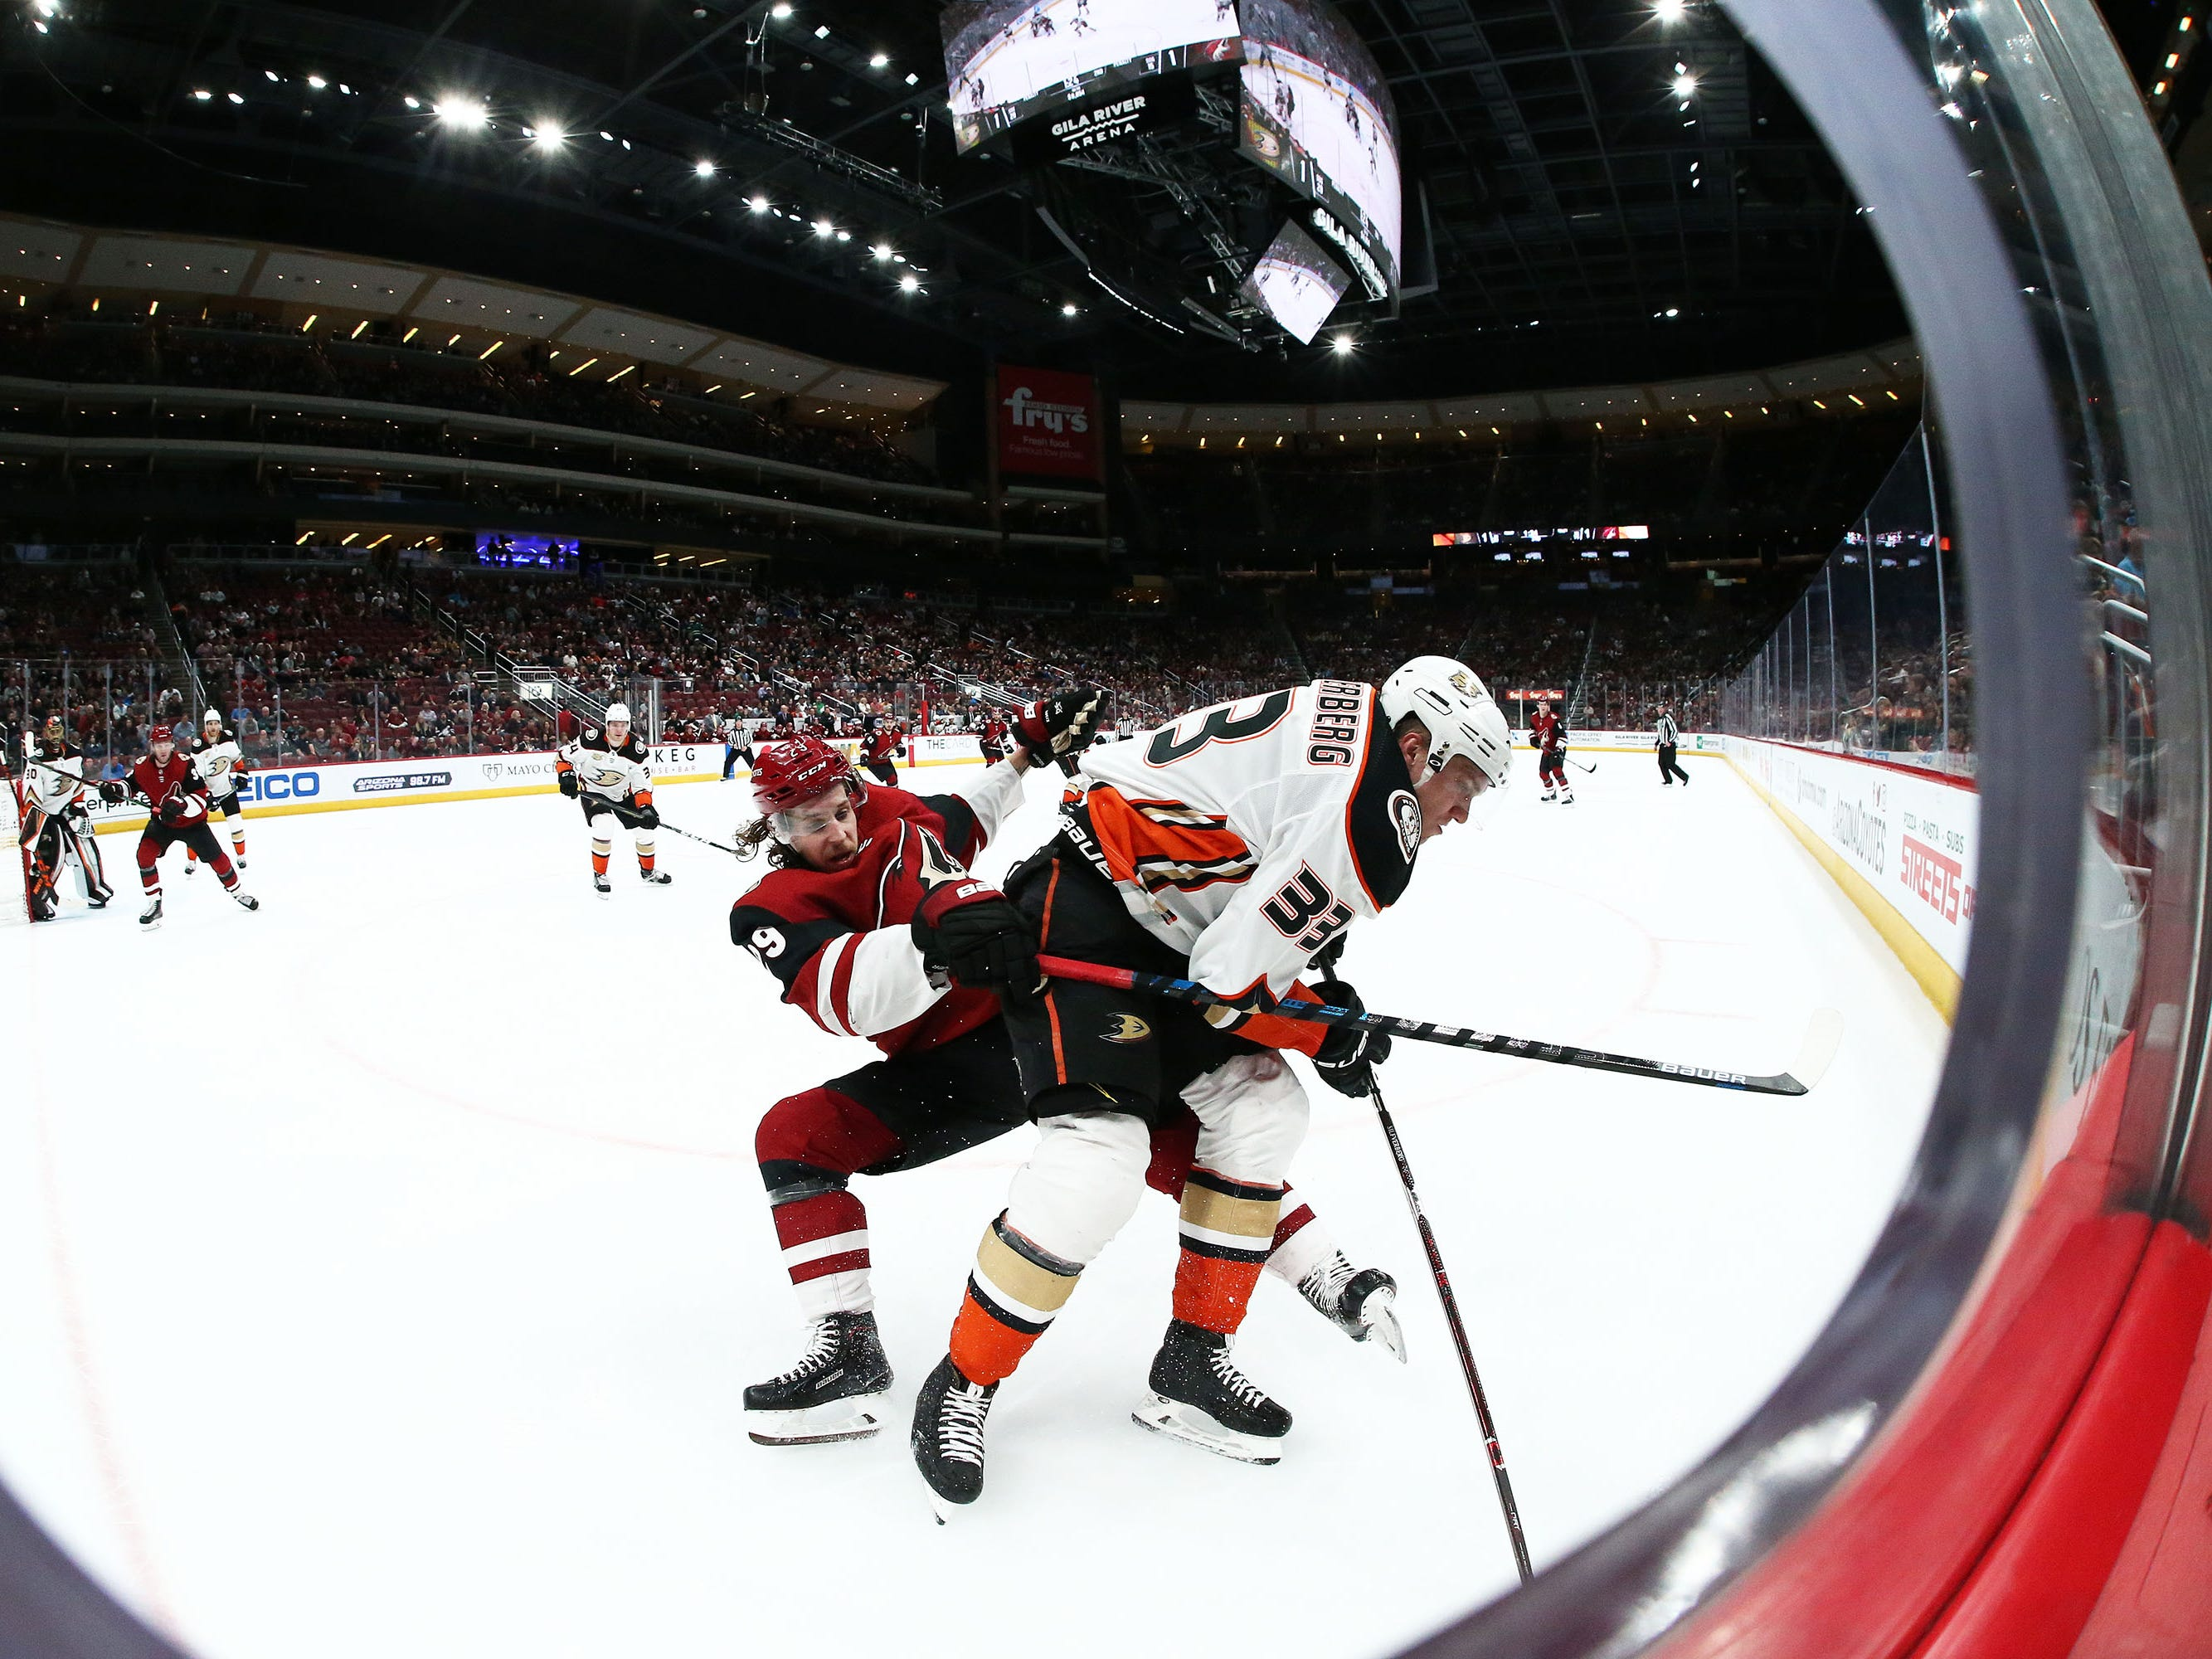 Arizona Coyotes right wing Mario Kempe (29) collides with Anaheim Ducks right wing Jakob Silfverberg (33) in the second period on Mar. 5, 2019, at Gila River Arena in Glendale, Ariz.